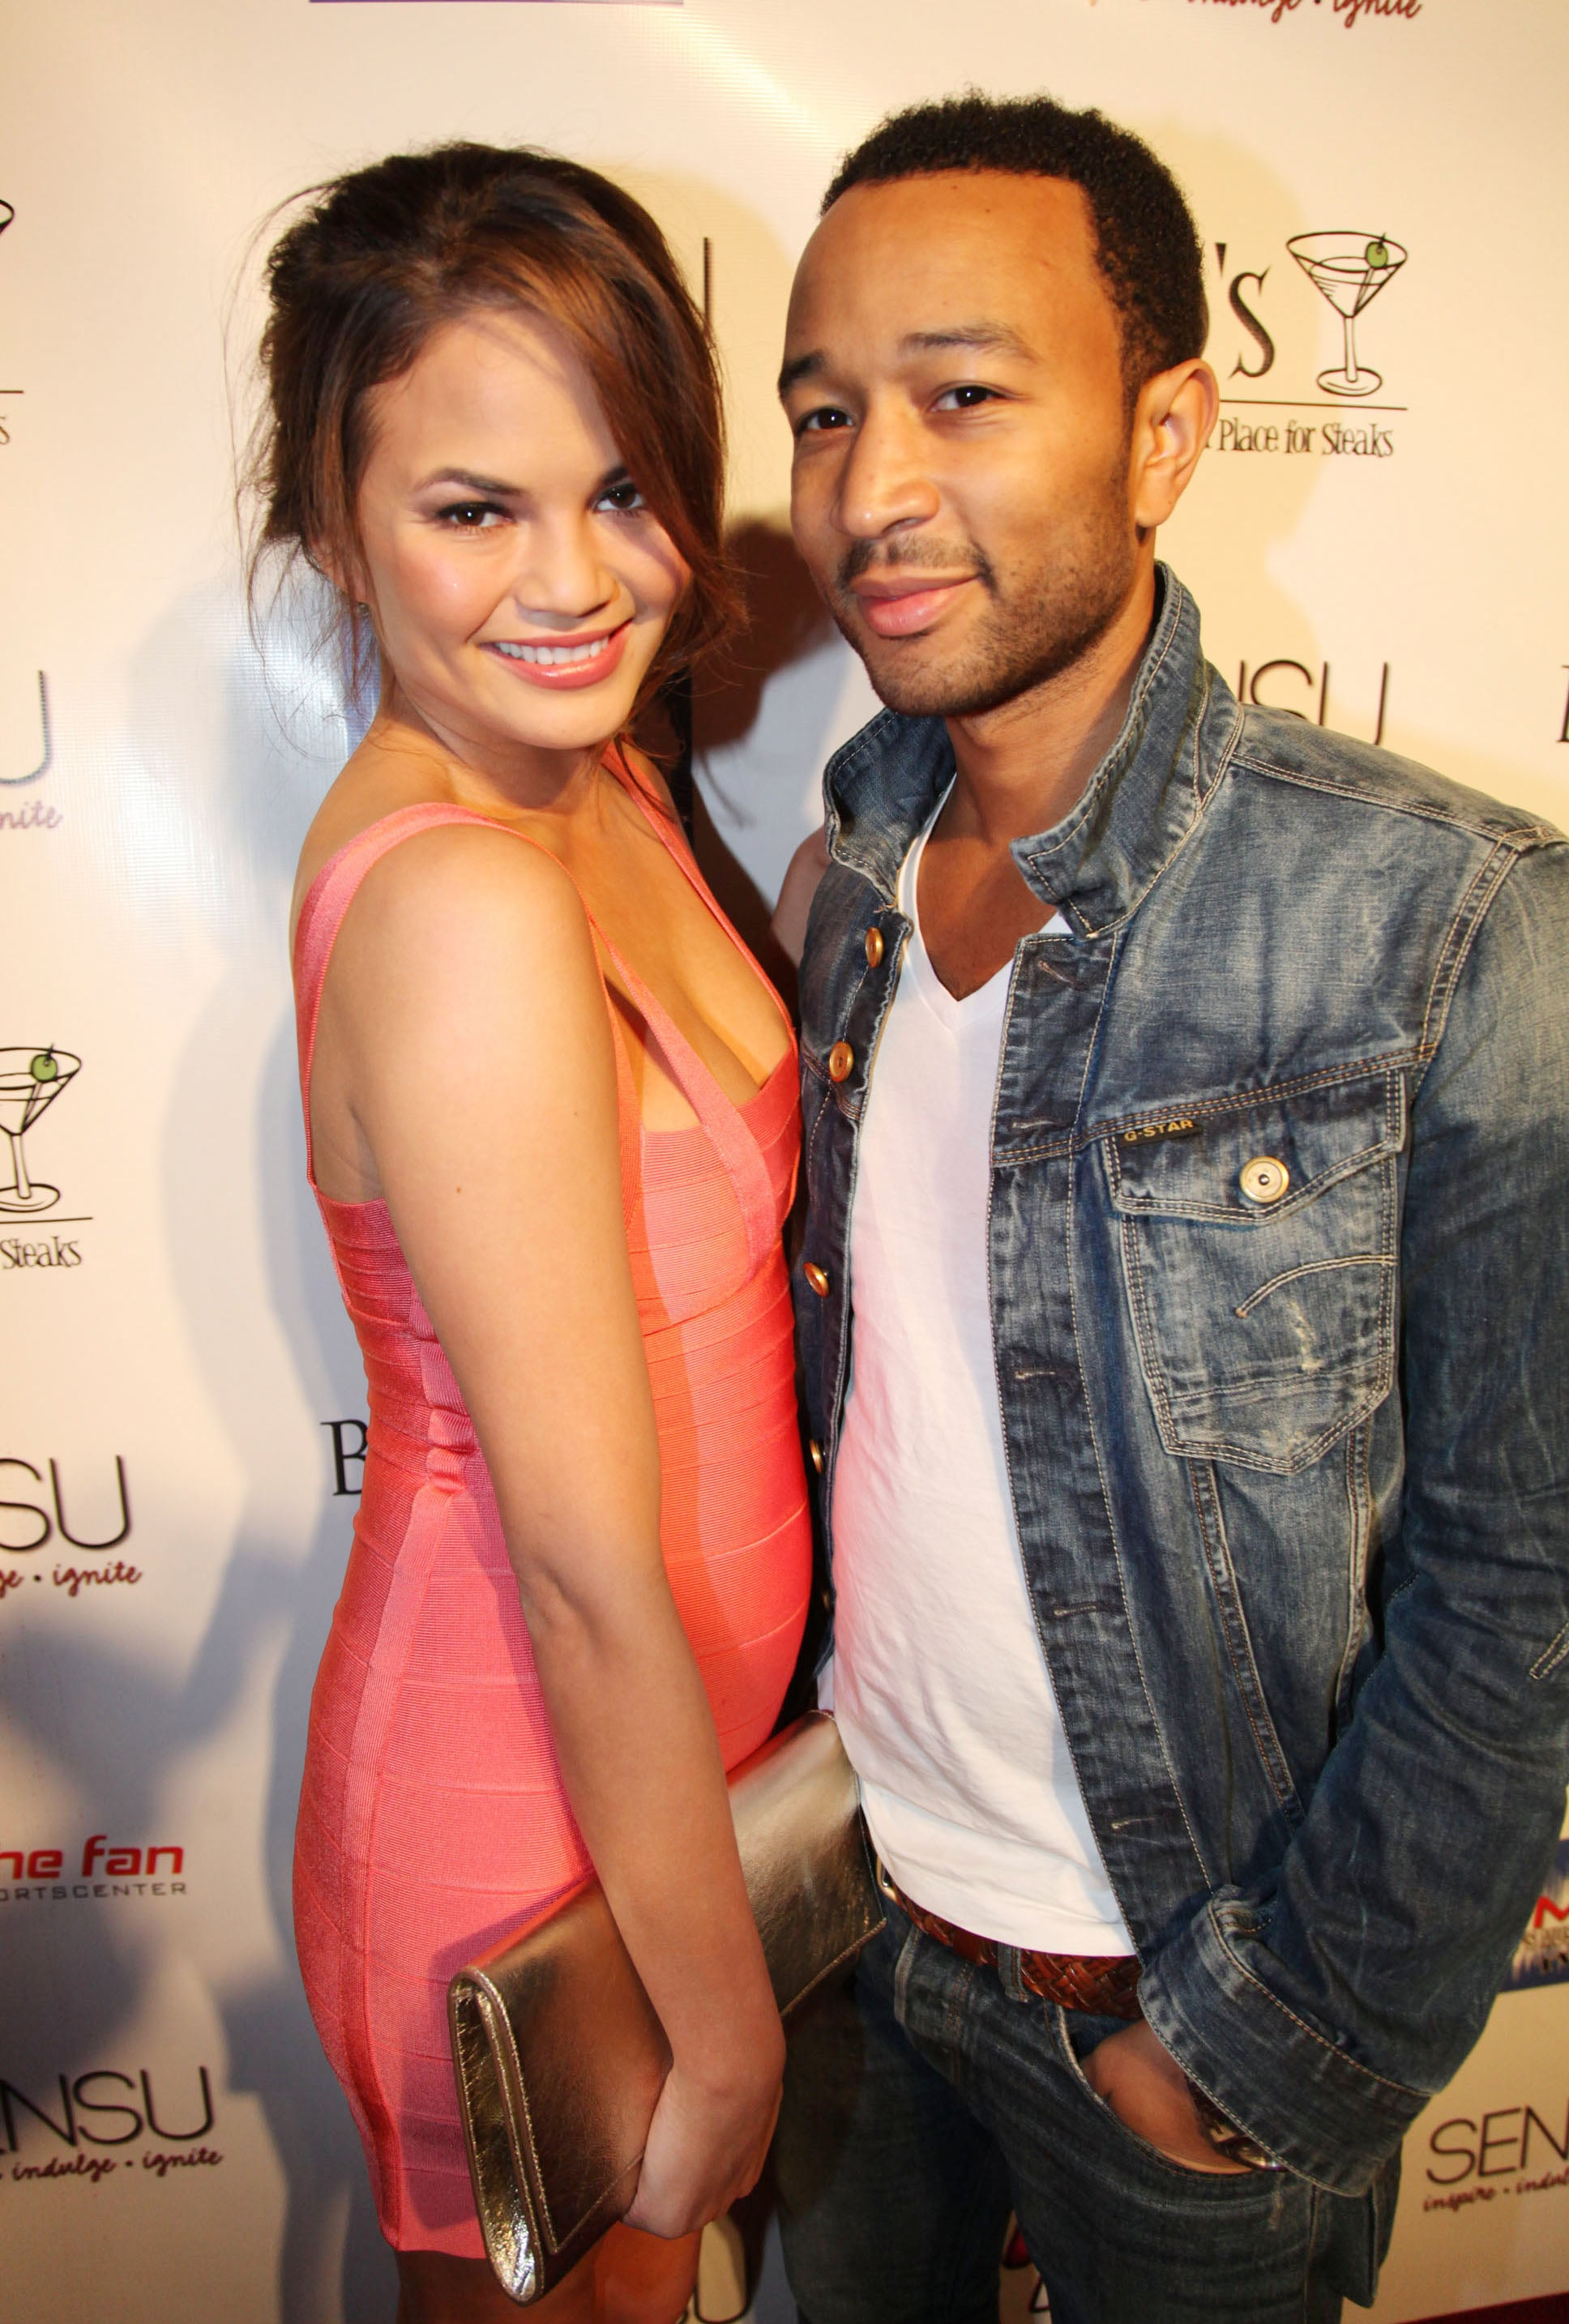 Chrissy Teigen and John Legend attended Celebration Sunday at Sensu during Super Bowl weekend 2012.